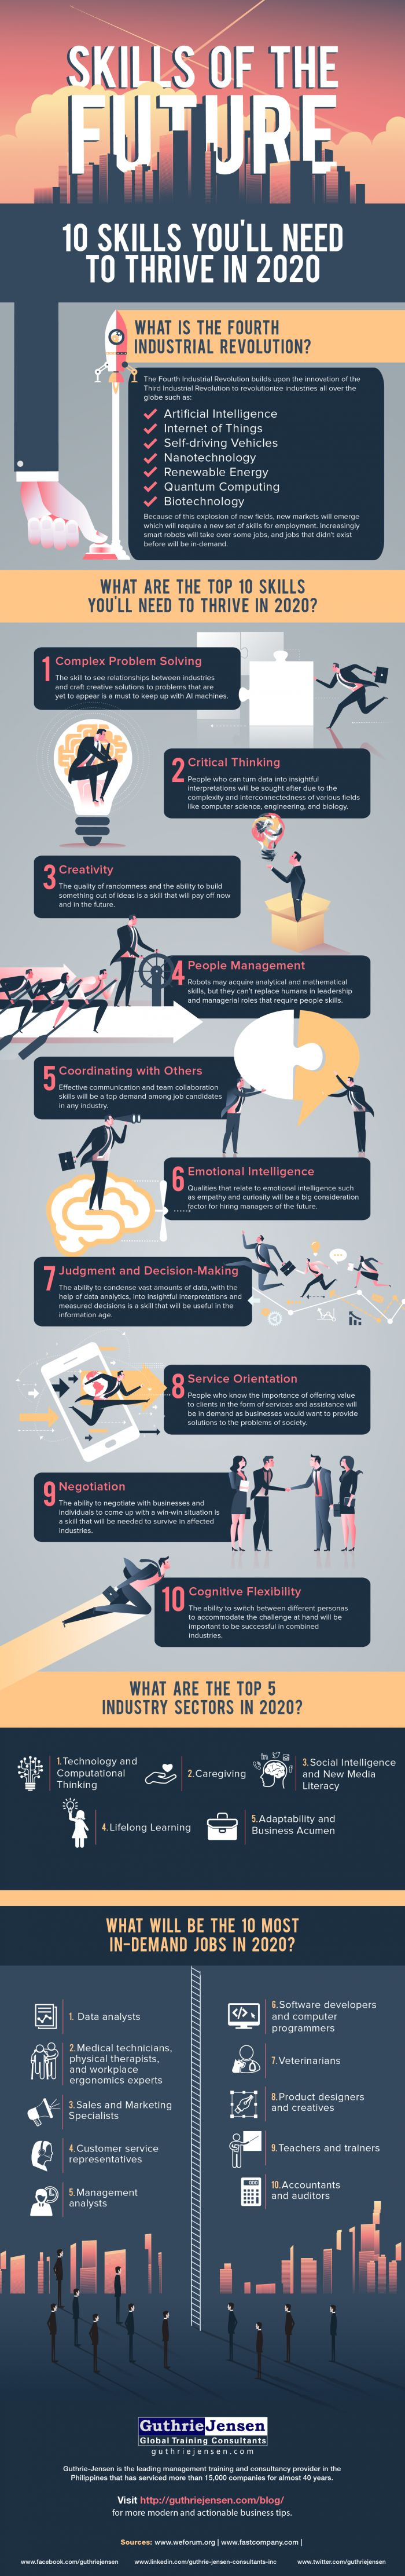 Merveilleux 10 Hottest Jobs In 2020 And The Skills You Need [Infographic